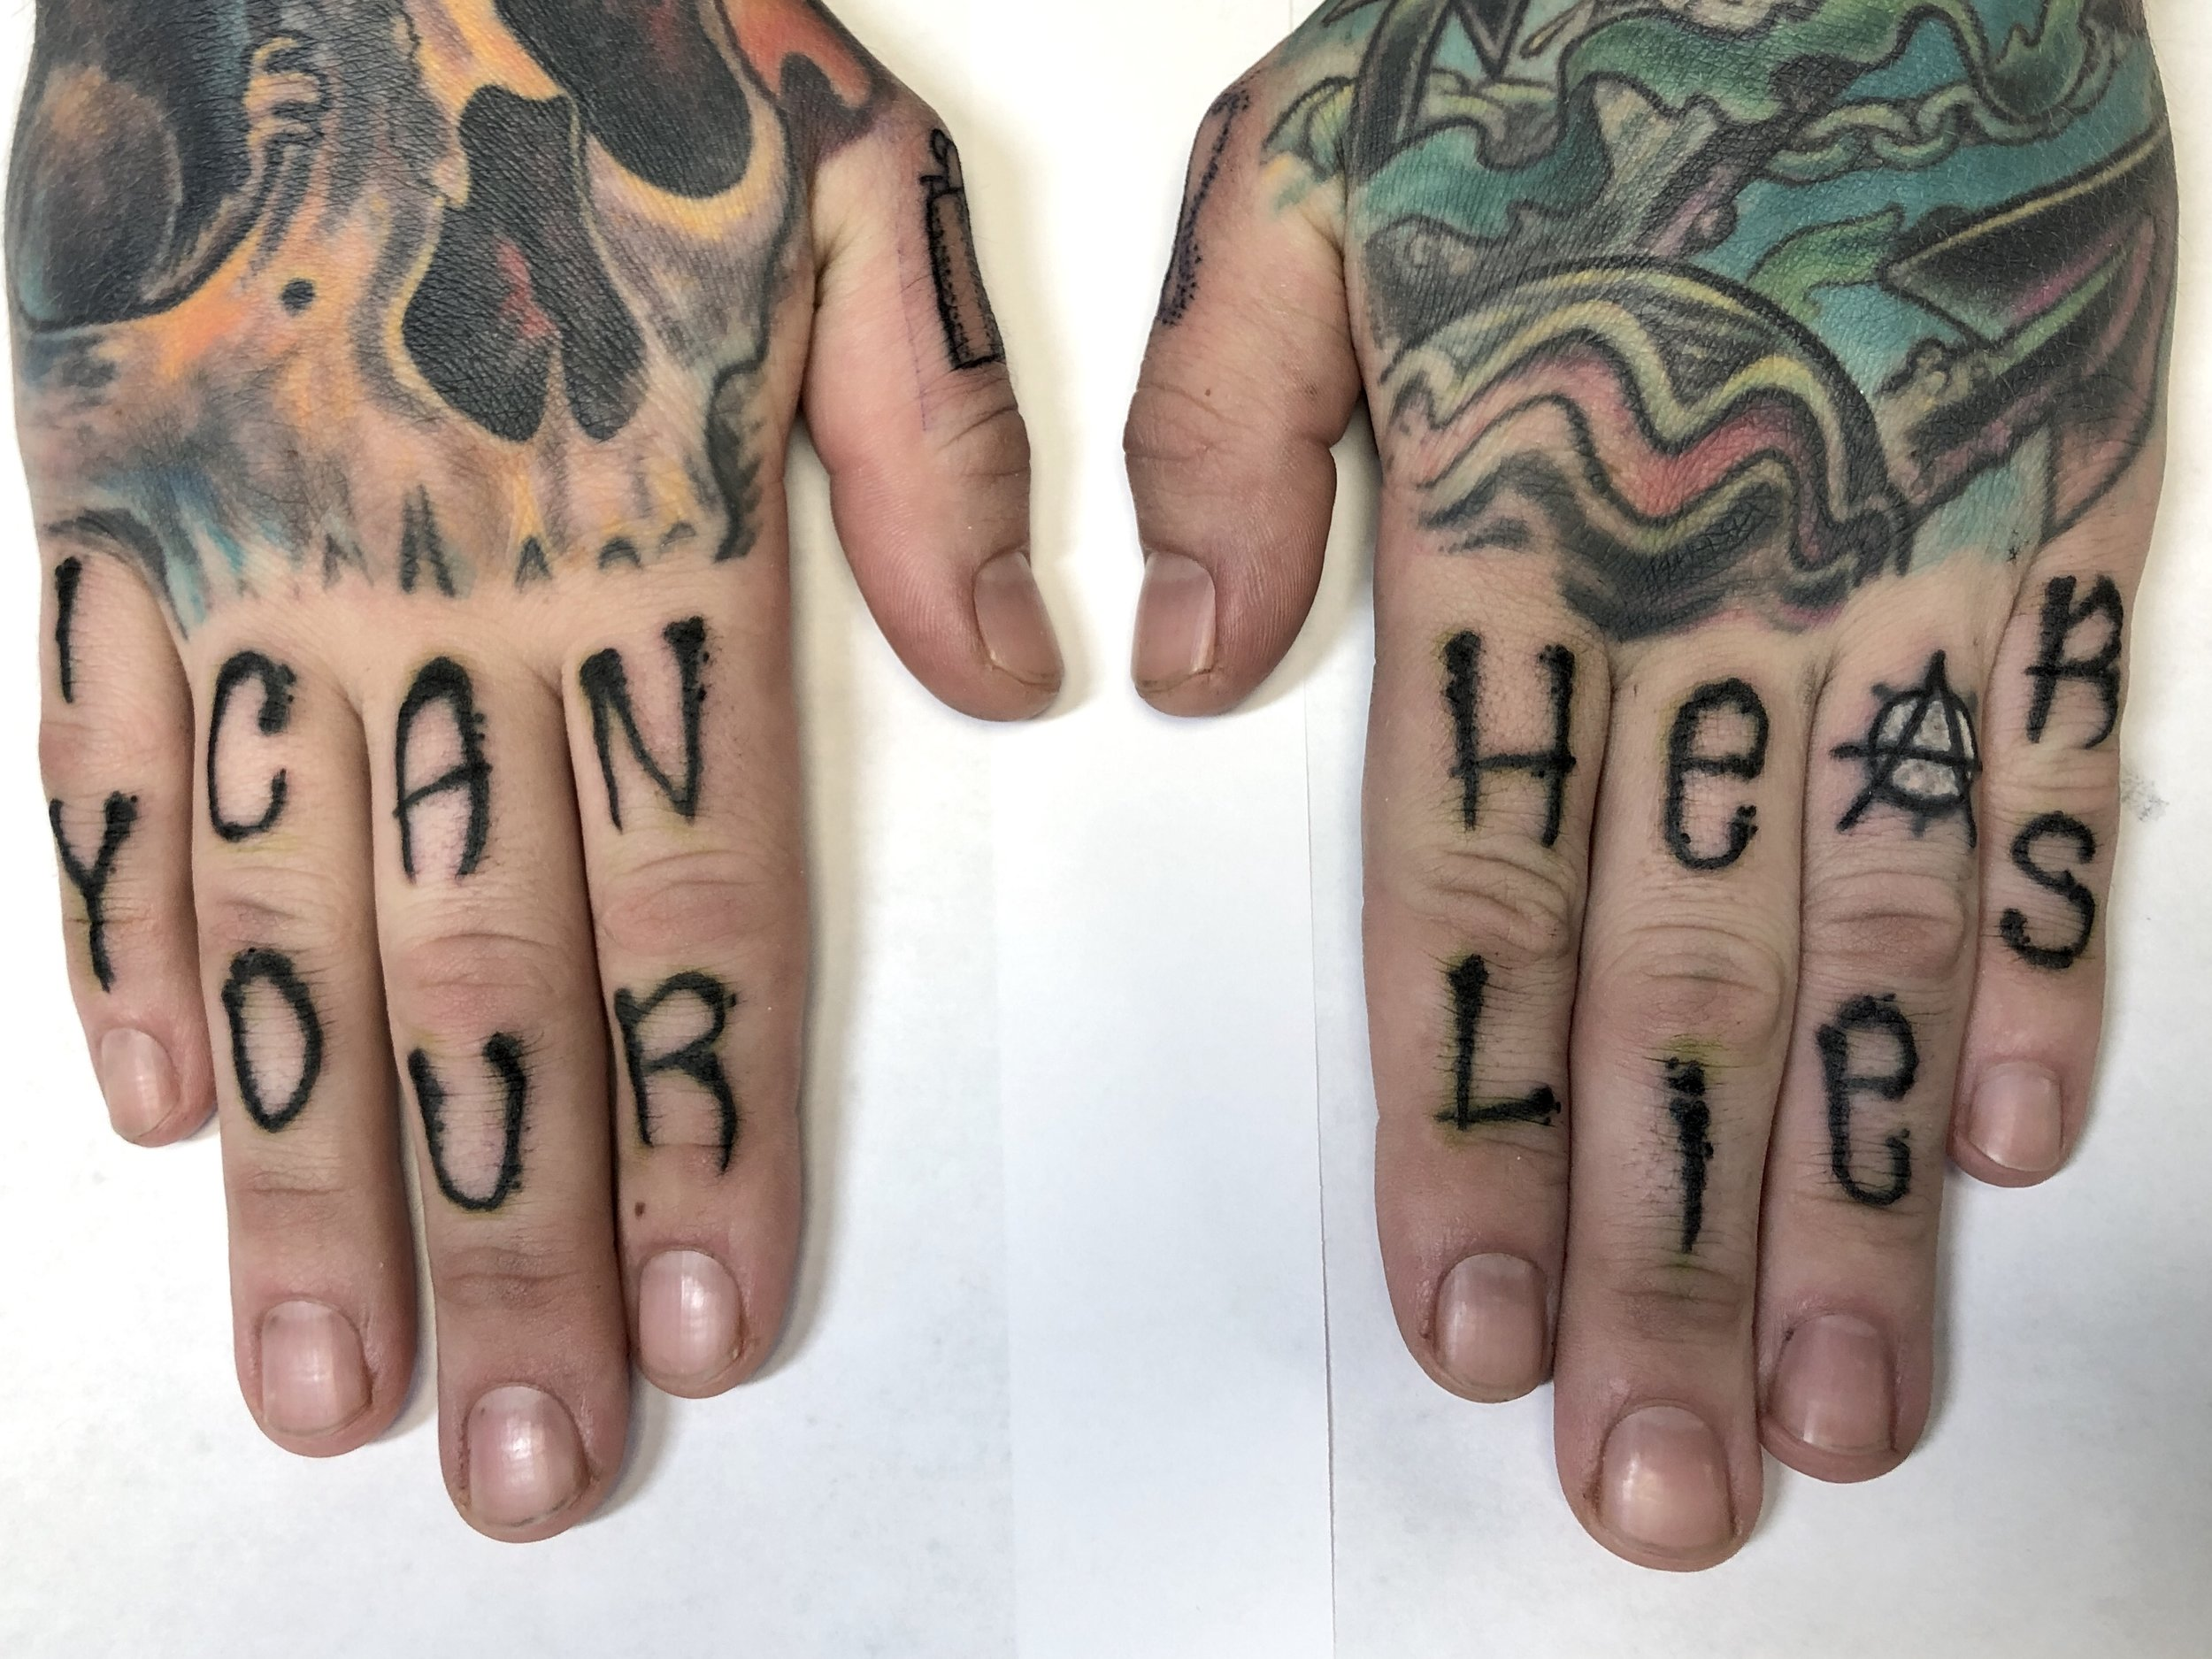 I can hear your lies knuckle tattoo